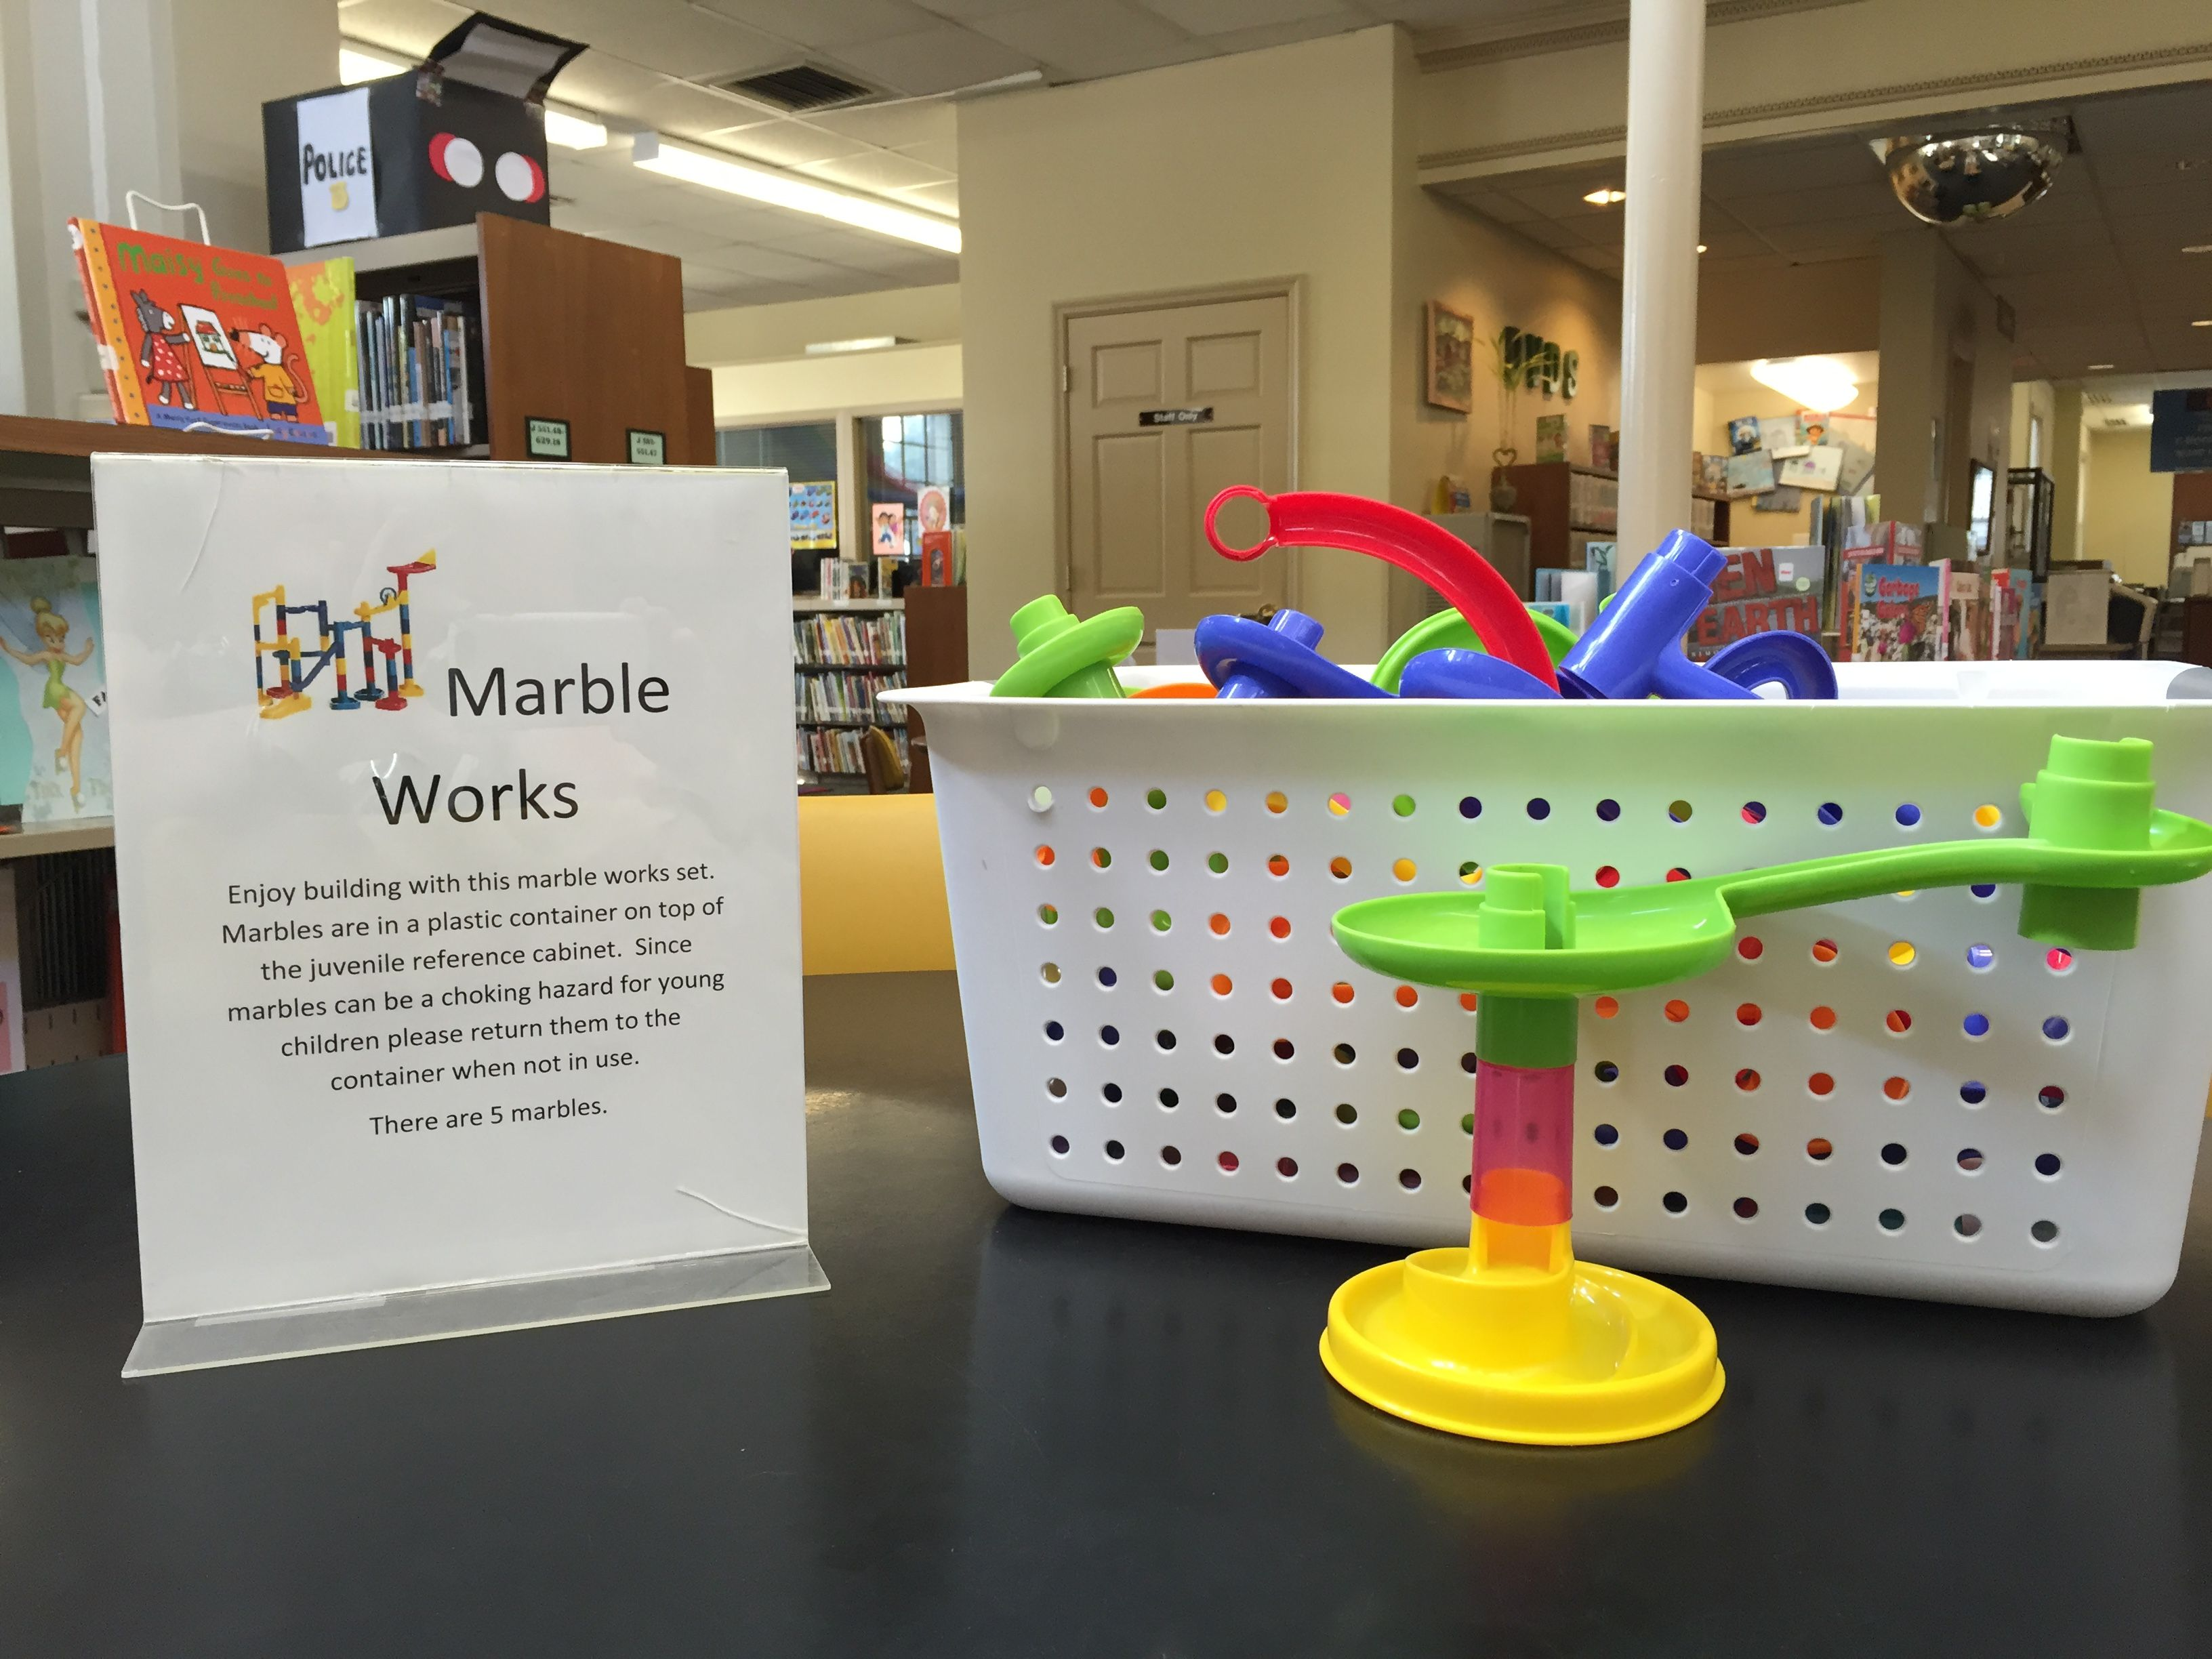 marbleworks in the library has been a HUGE hit with all ages.  Science and math all in one fun game.